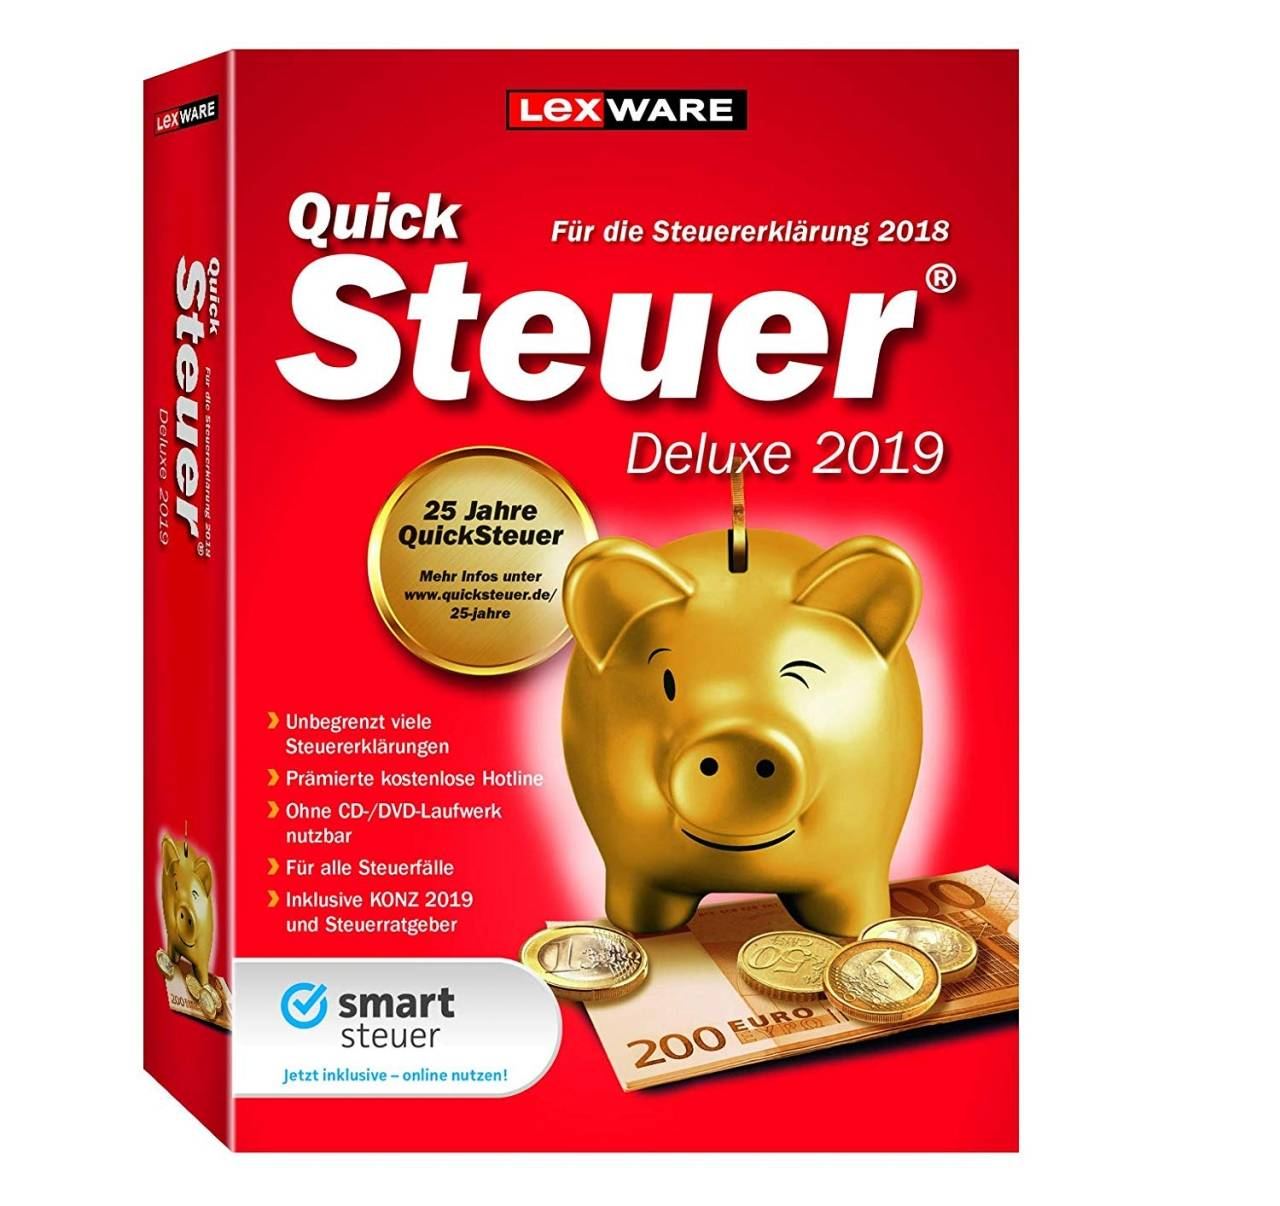 Lexware QuickSteuer Deluxe 2019 for the tax return 2018 download